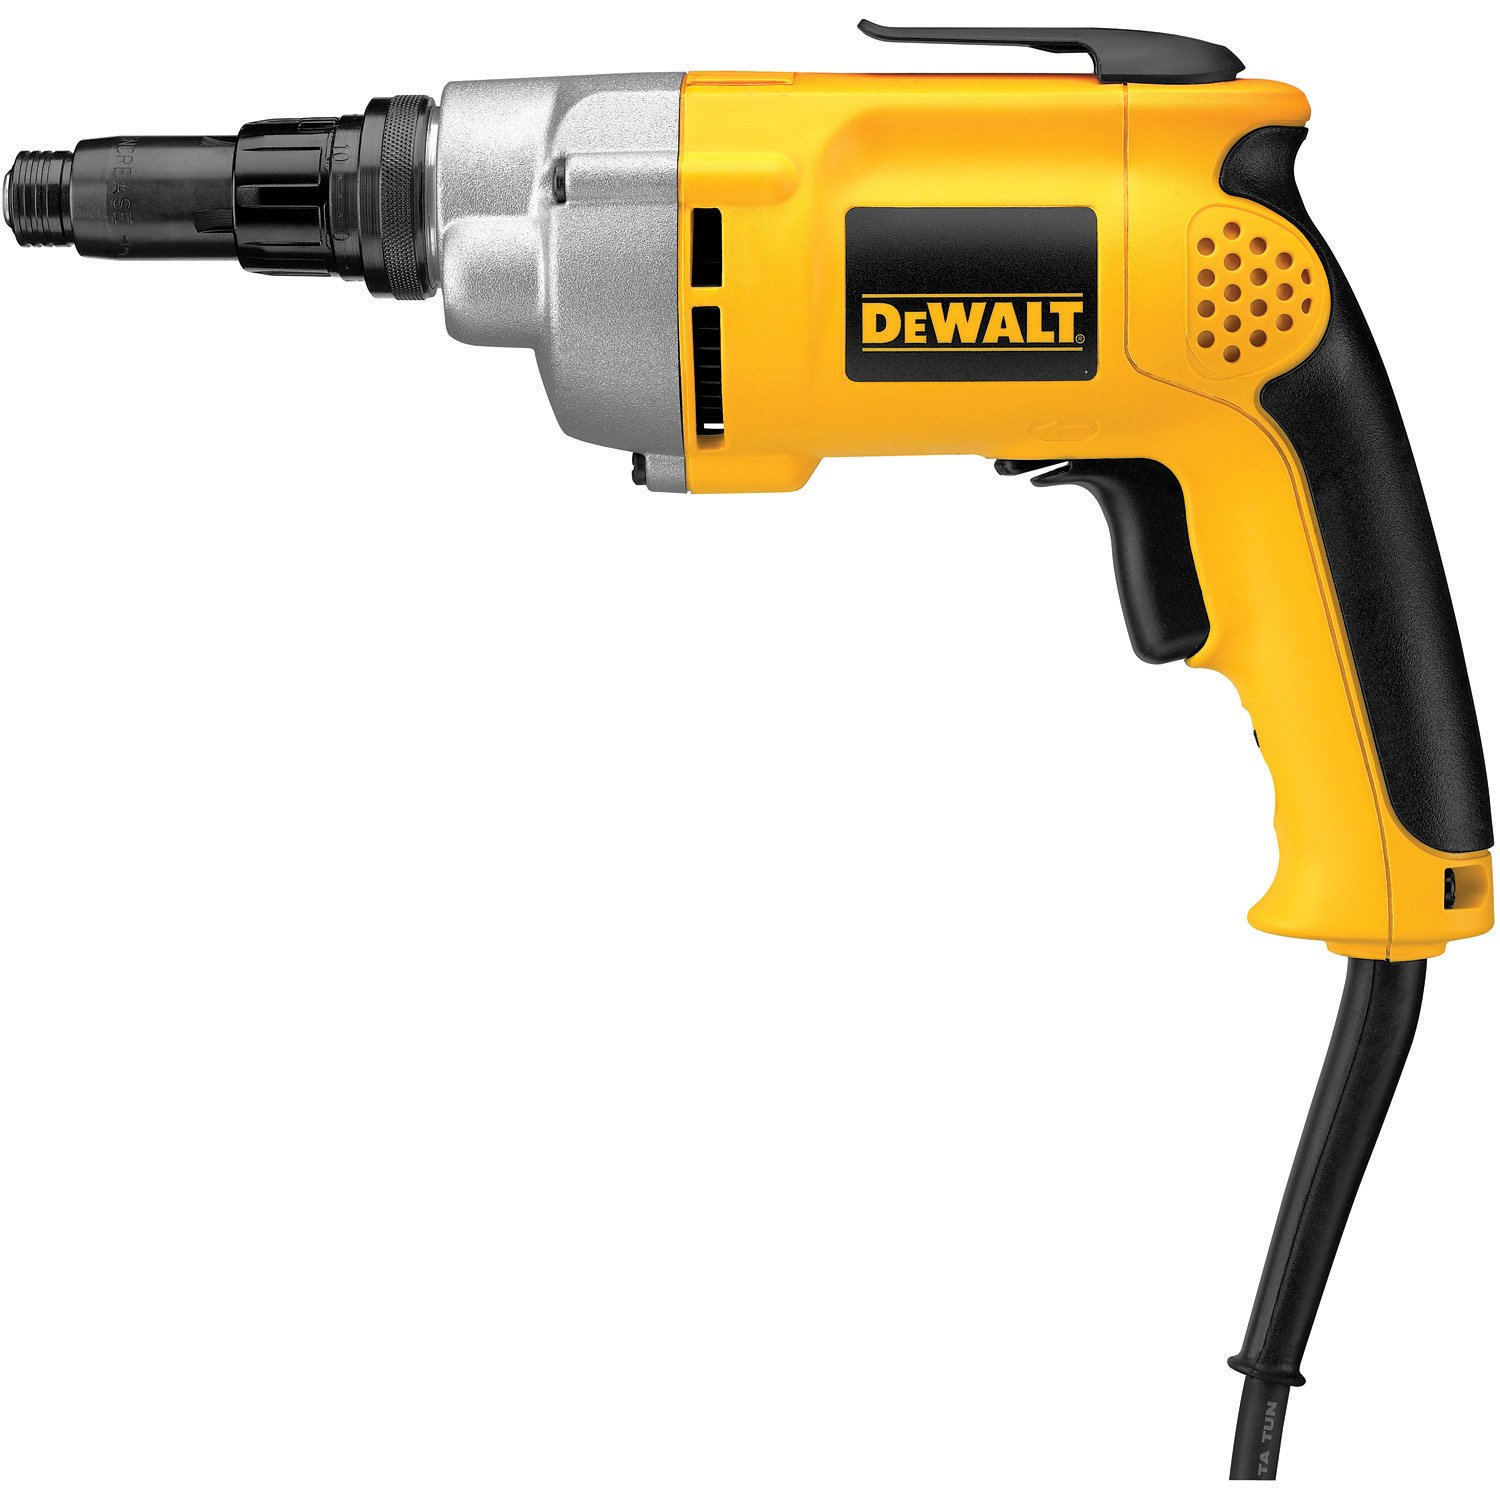 DEWALT Drywall Screw Gun, Variable Speed Reversible, 6.5-Amp DW267